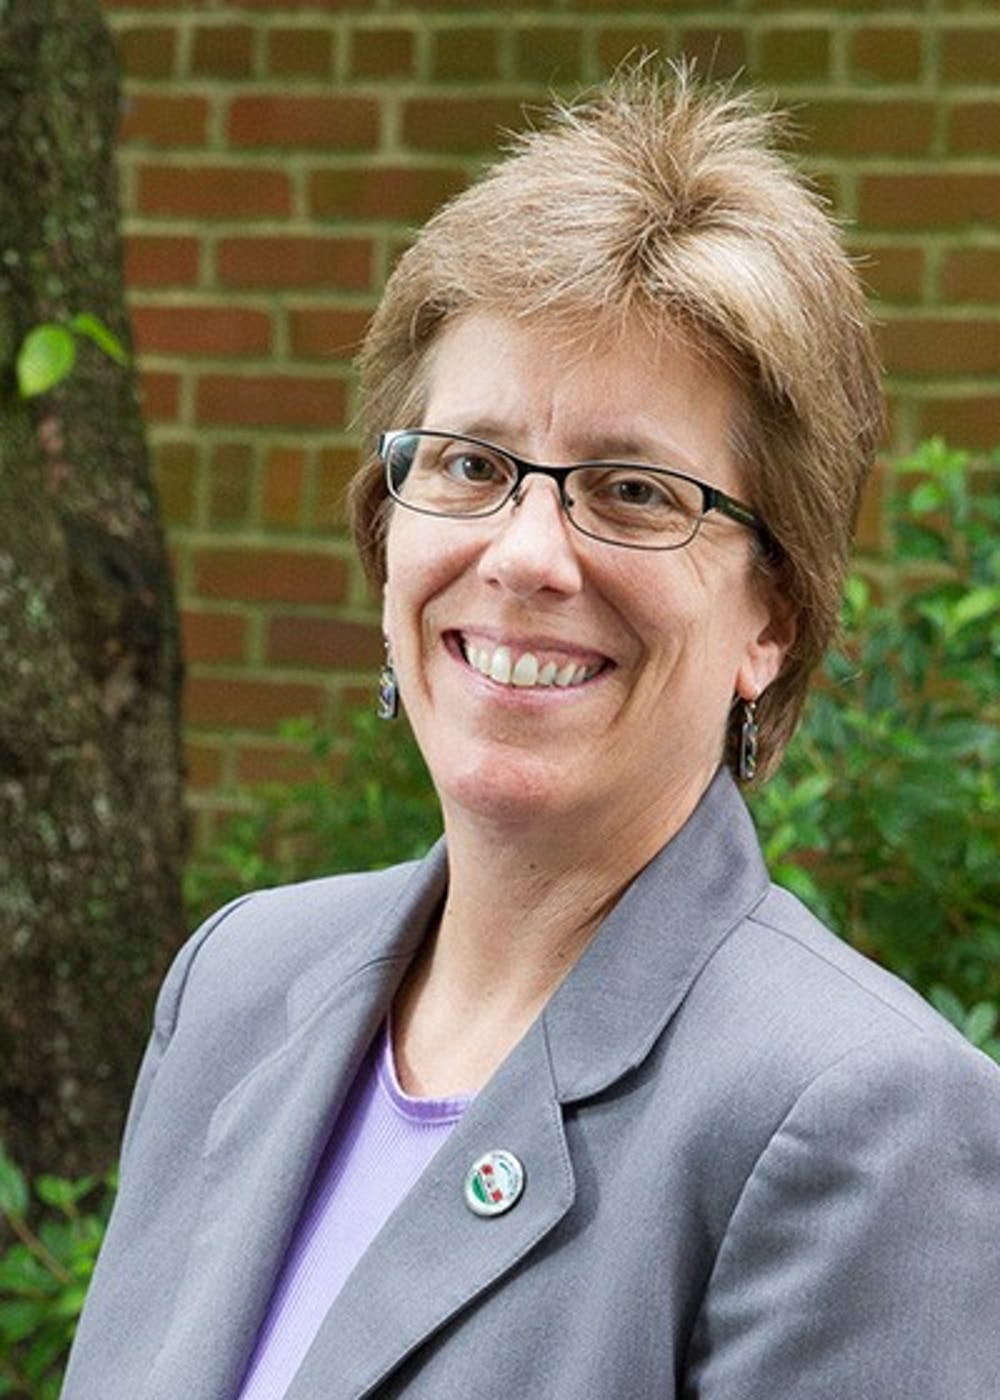 Carrboro mayor Lydia Lavelle gets the ball rolling on her election campaign